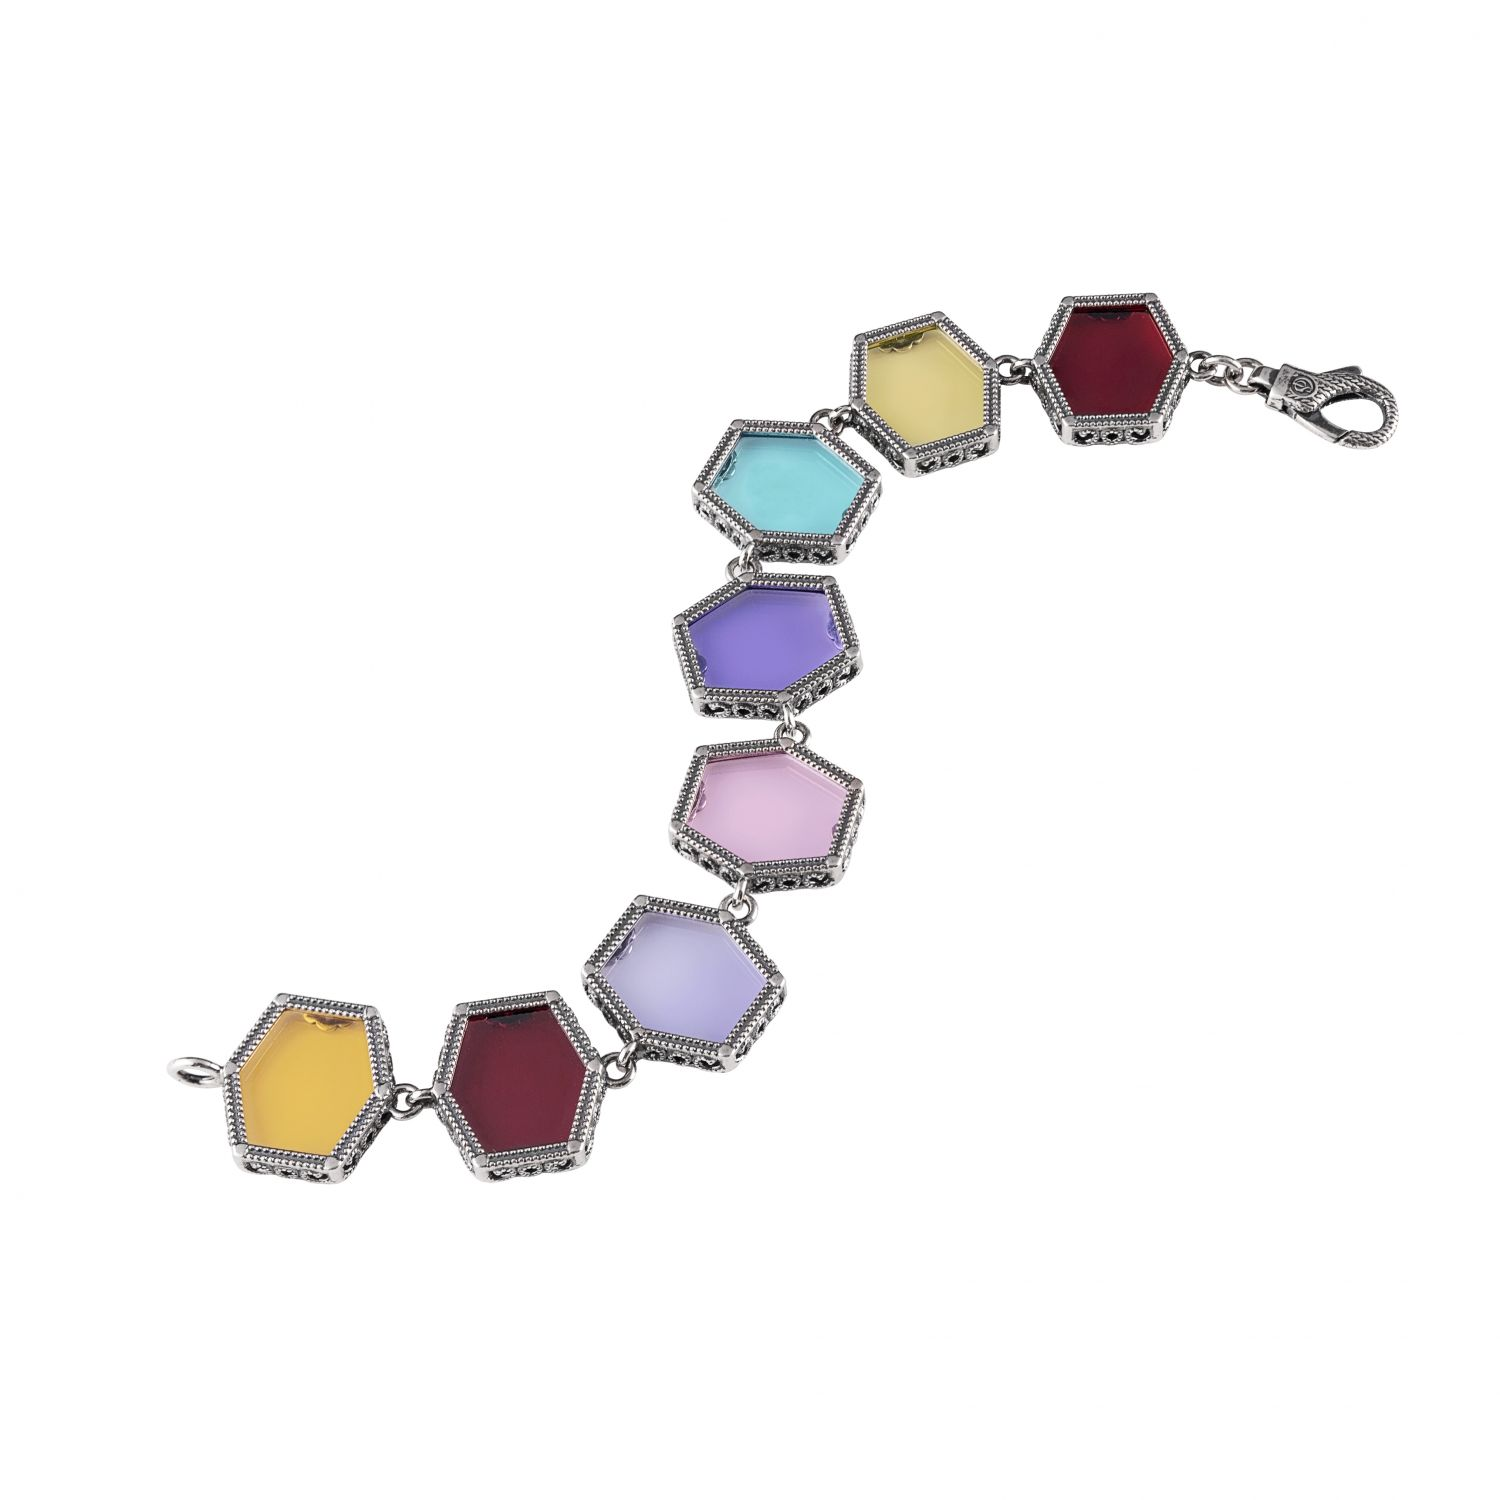 Silver Bracelet with colored gemstones (28022)